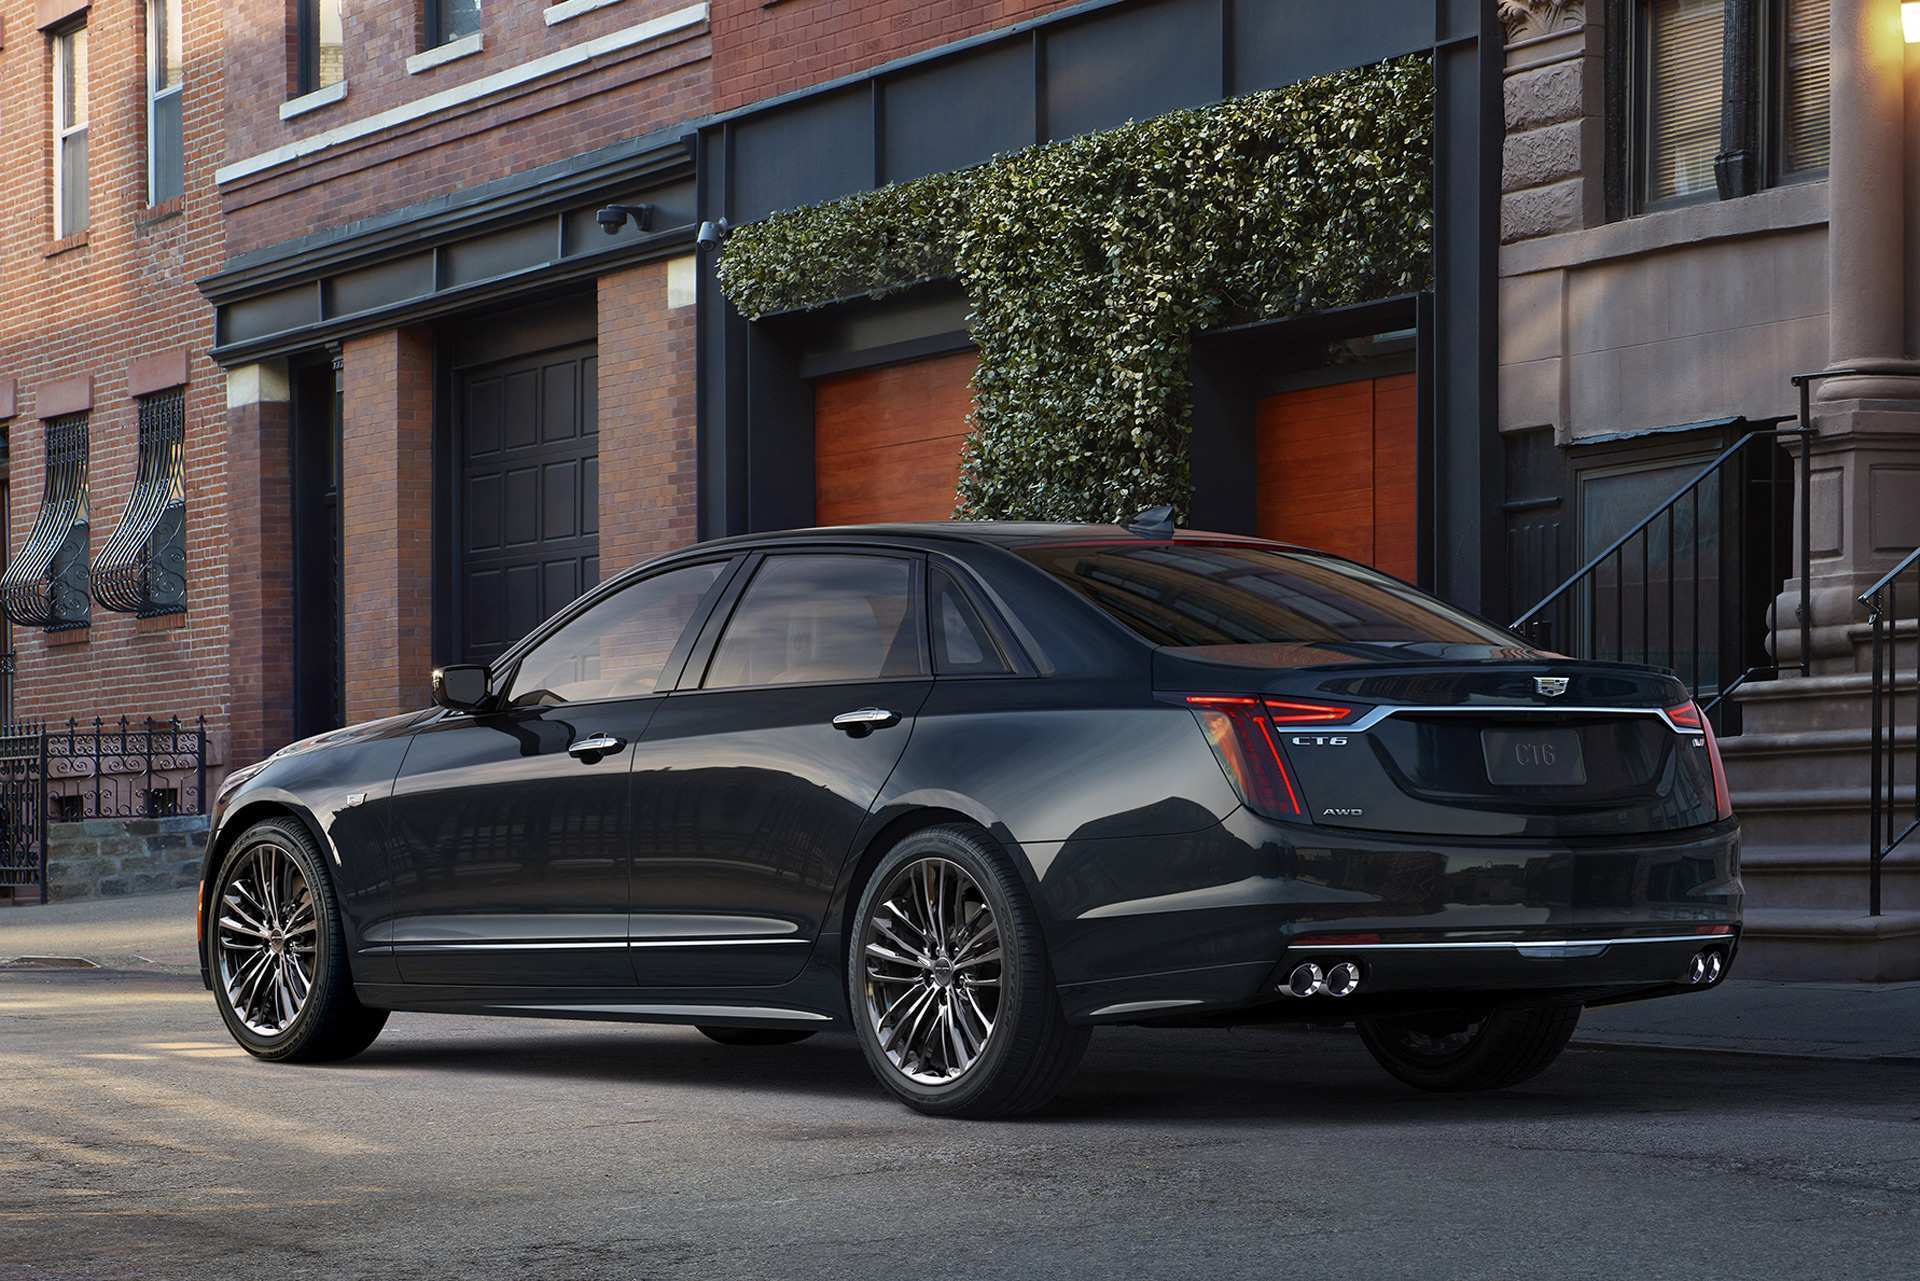 53 A 2020 Cadillac CT6 Pricing